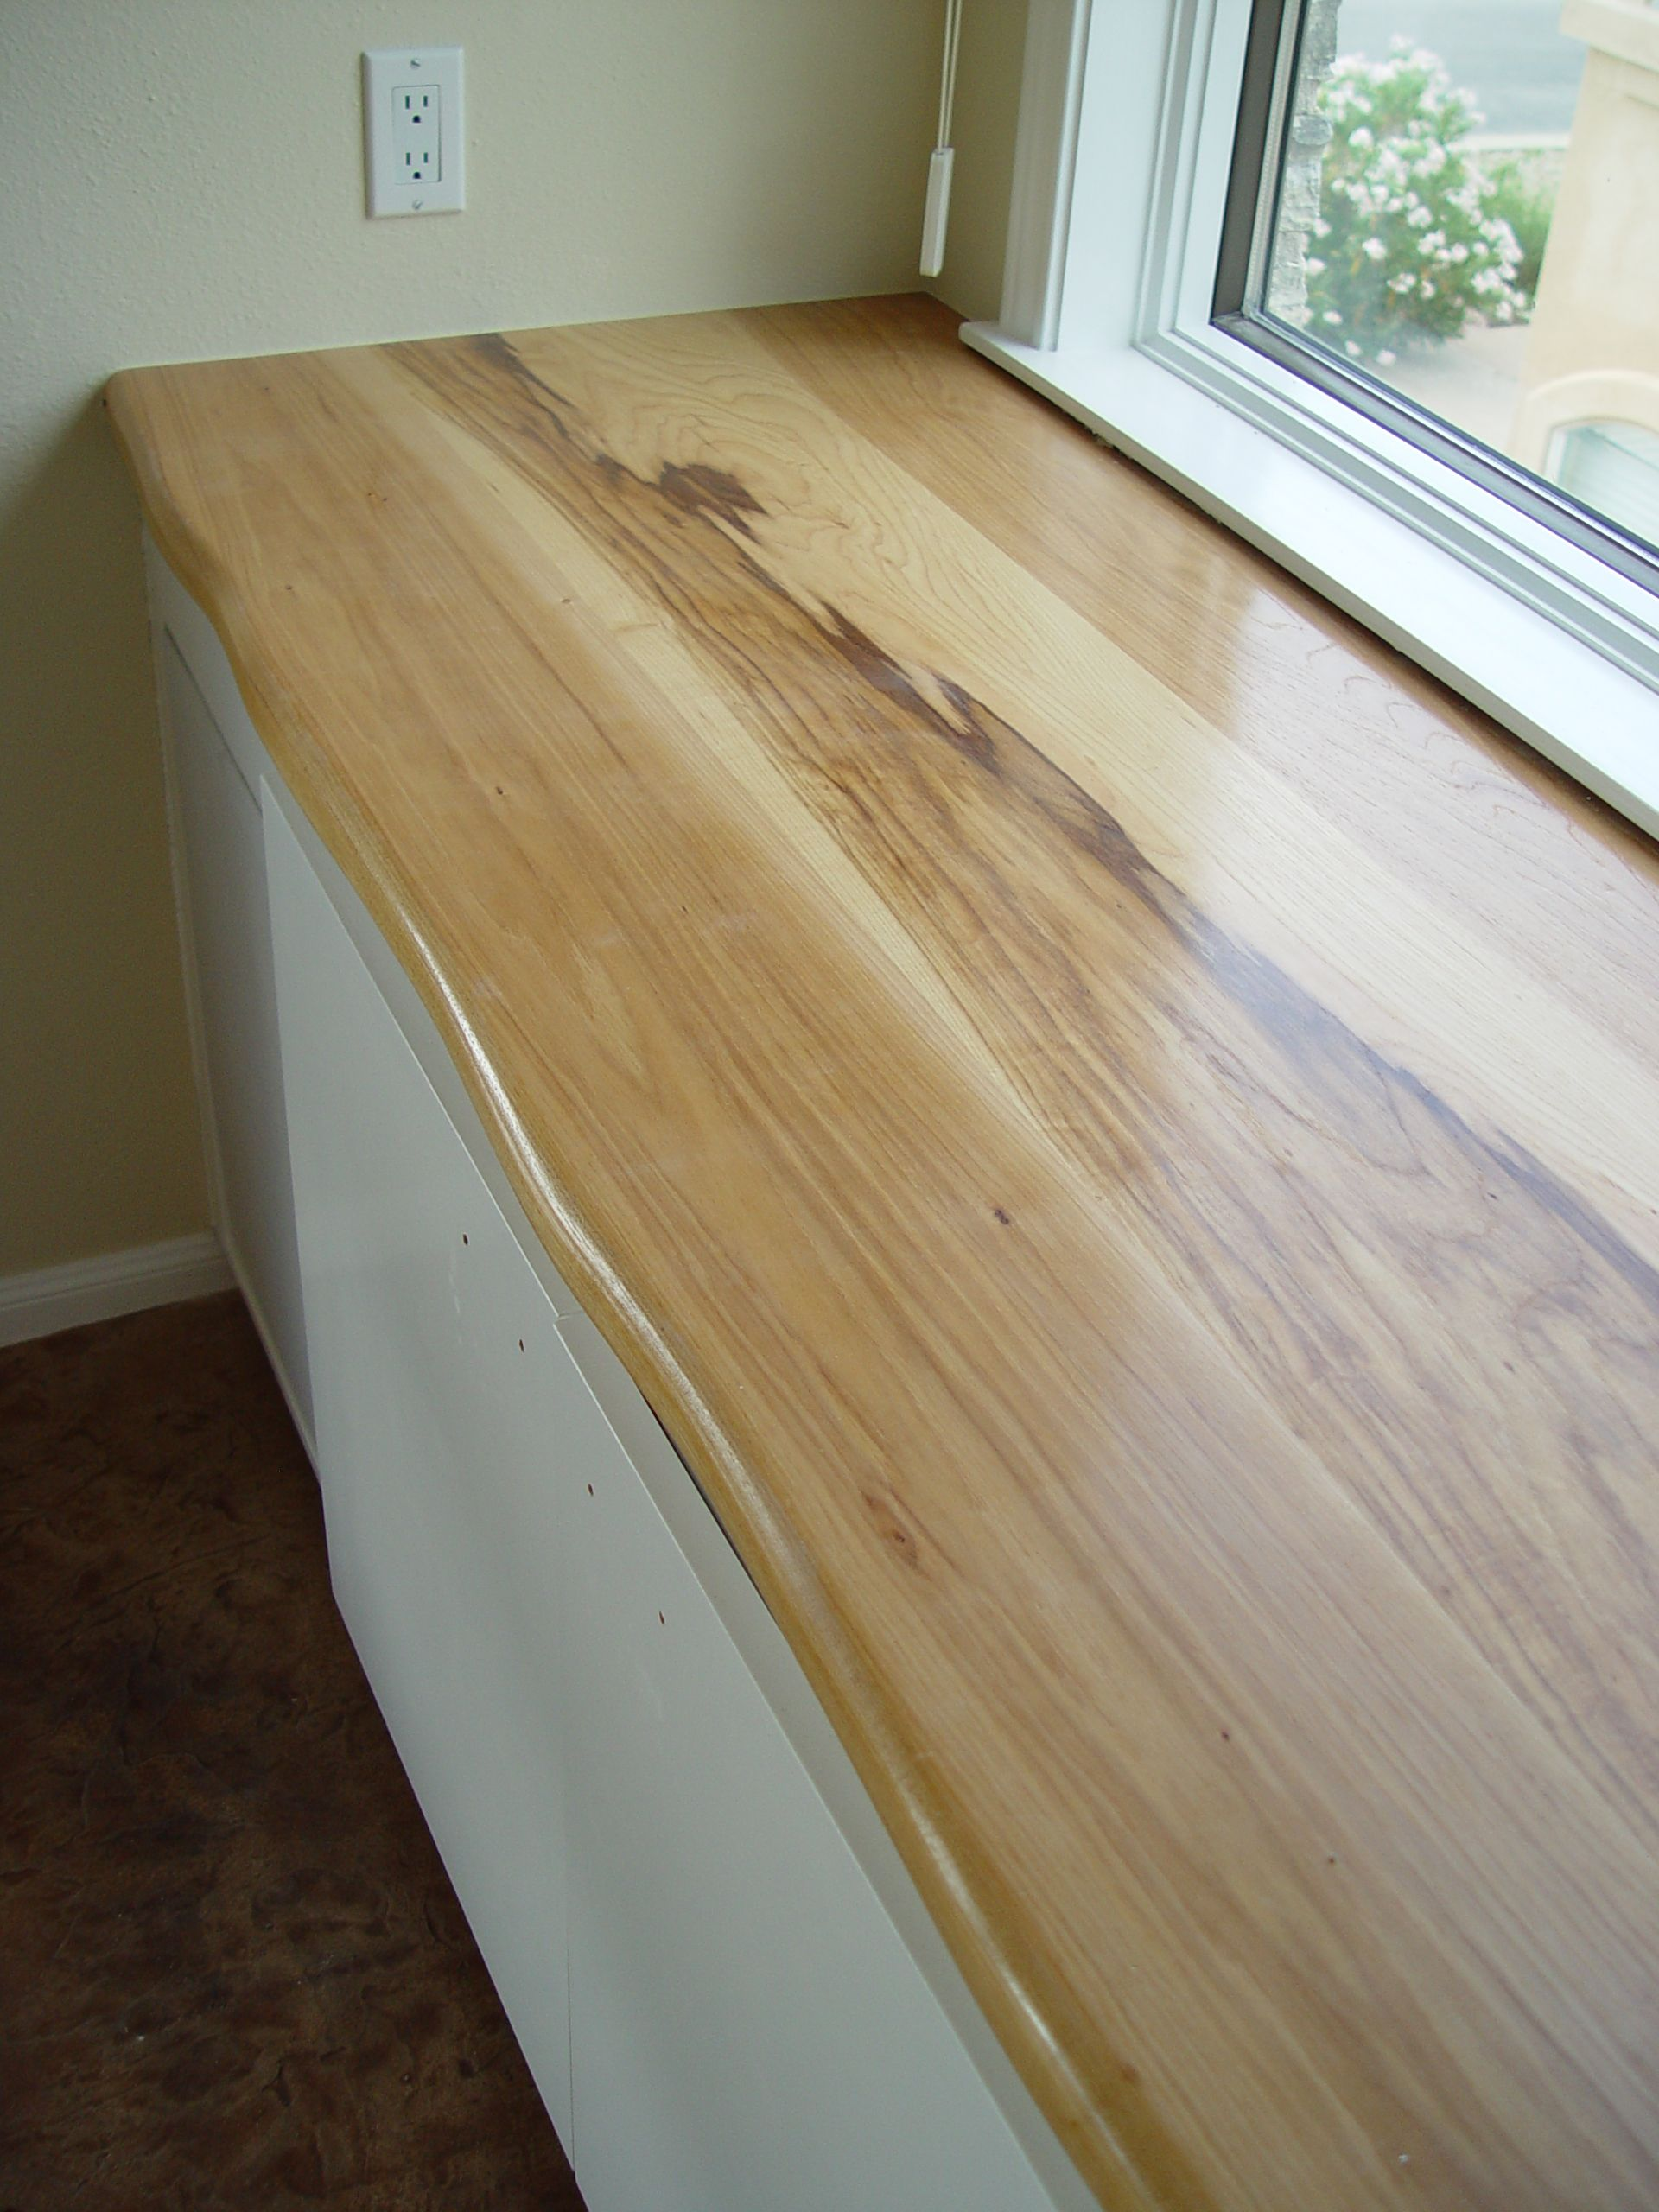 Custom Solid Wood Face Grain Pecan Counter Top With Natural Wane